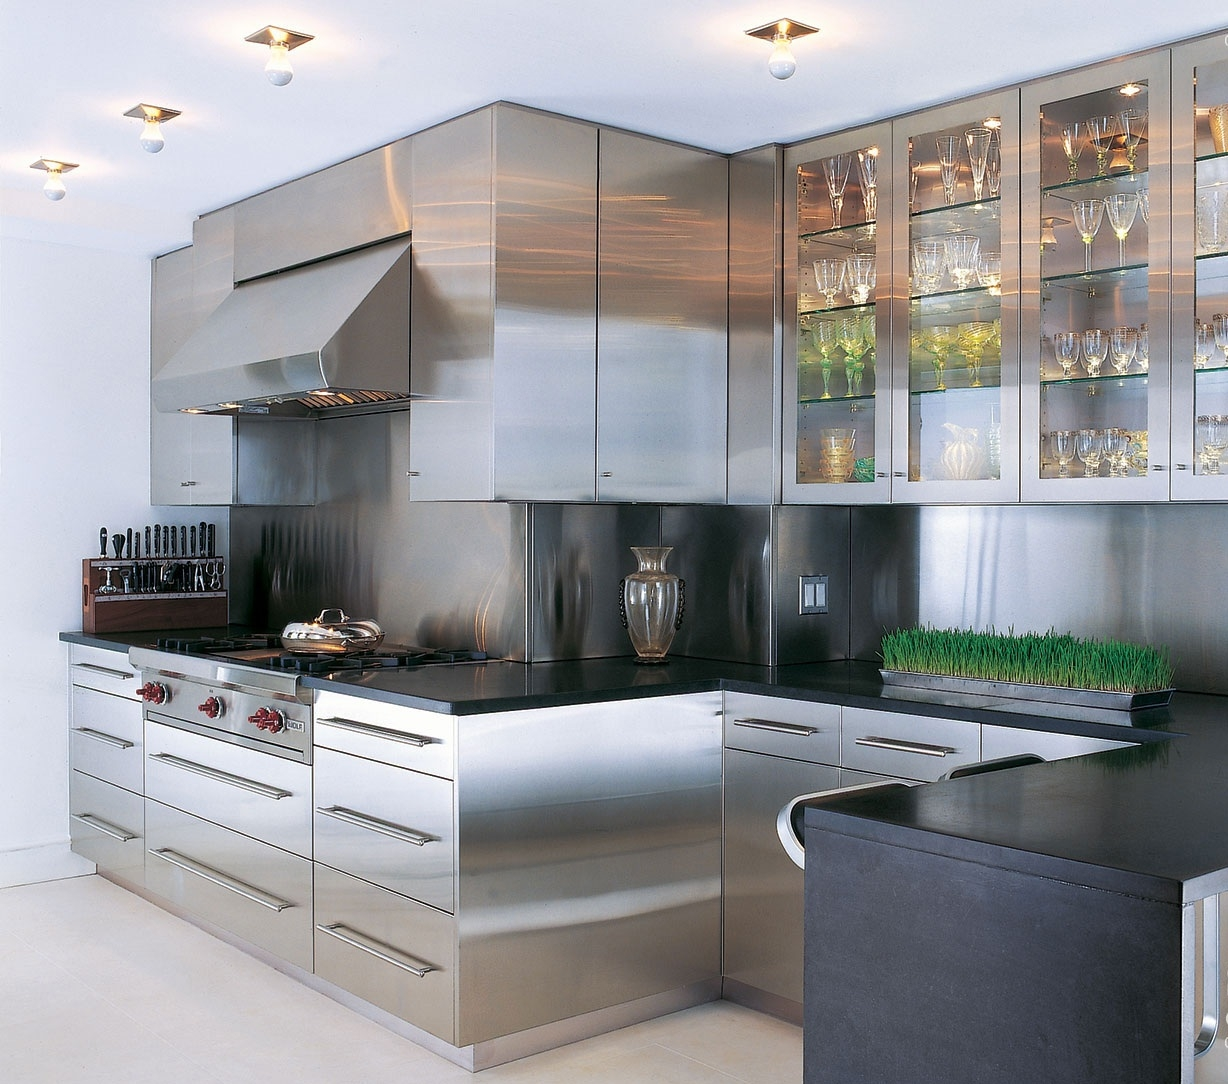 Stainless Steel Cabinets For Kitchen